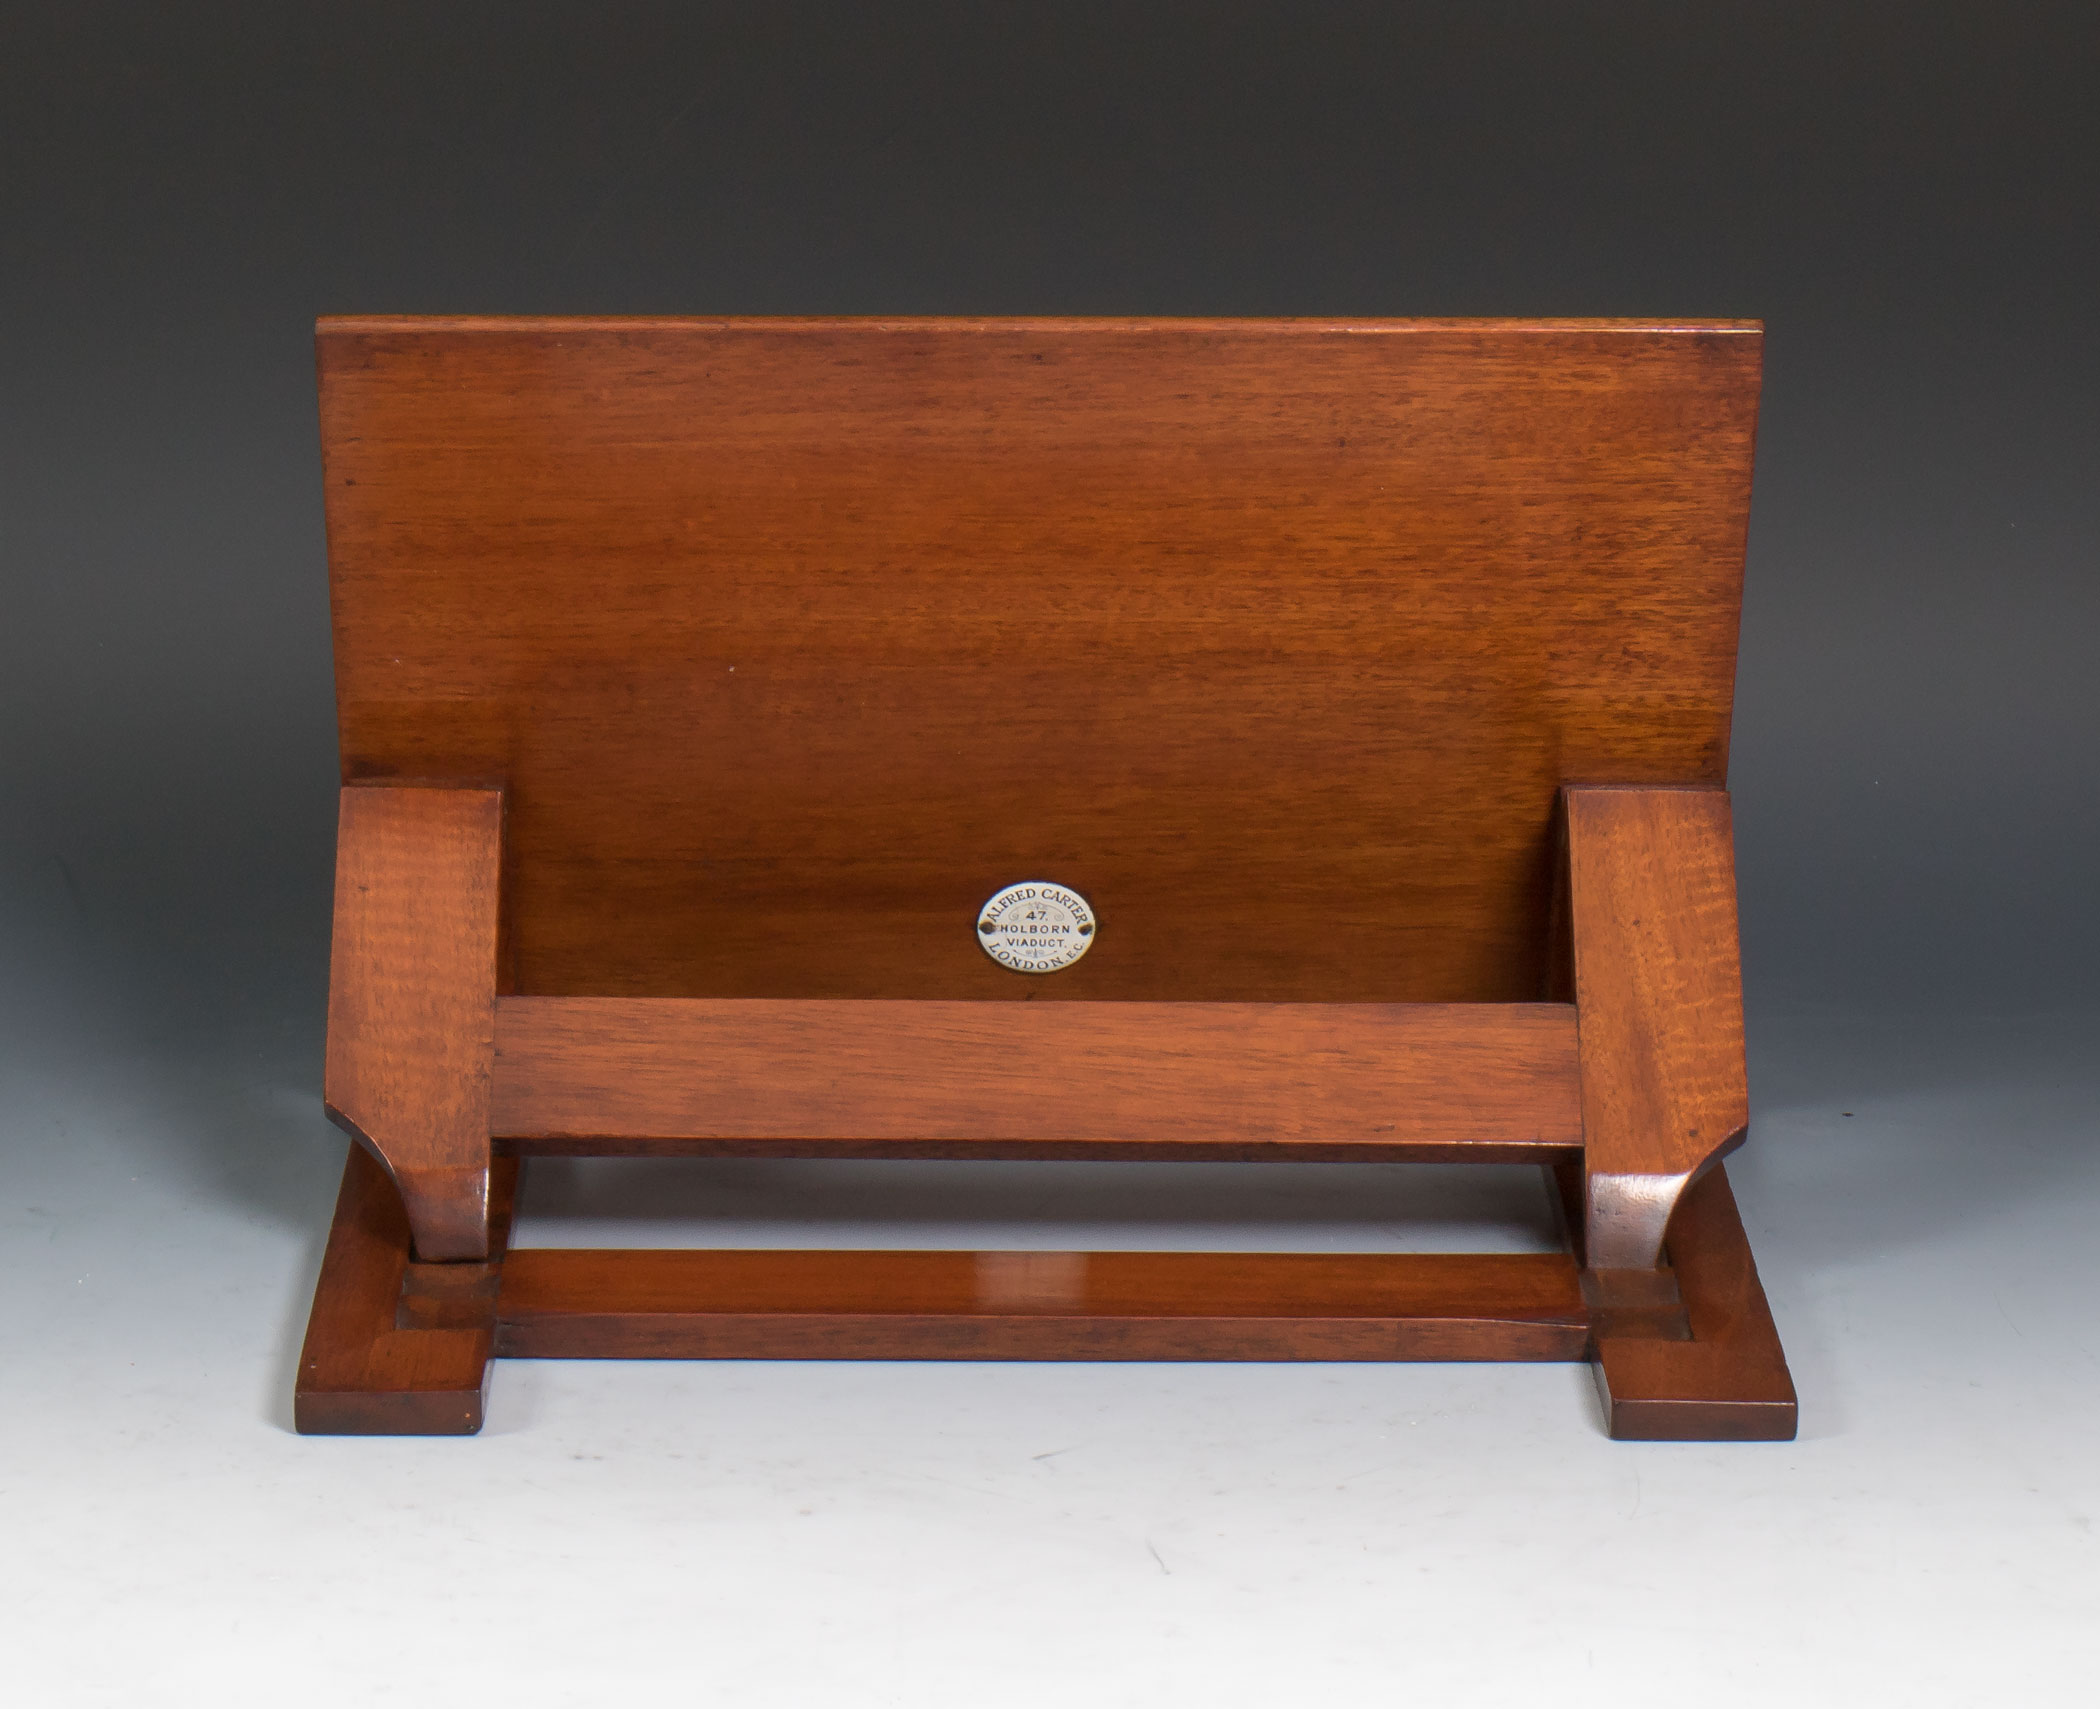 Exhibition Stand Items : S alfred carter solid mahogany book rest reading